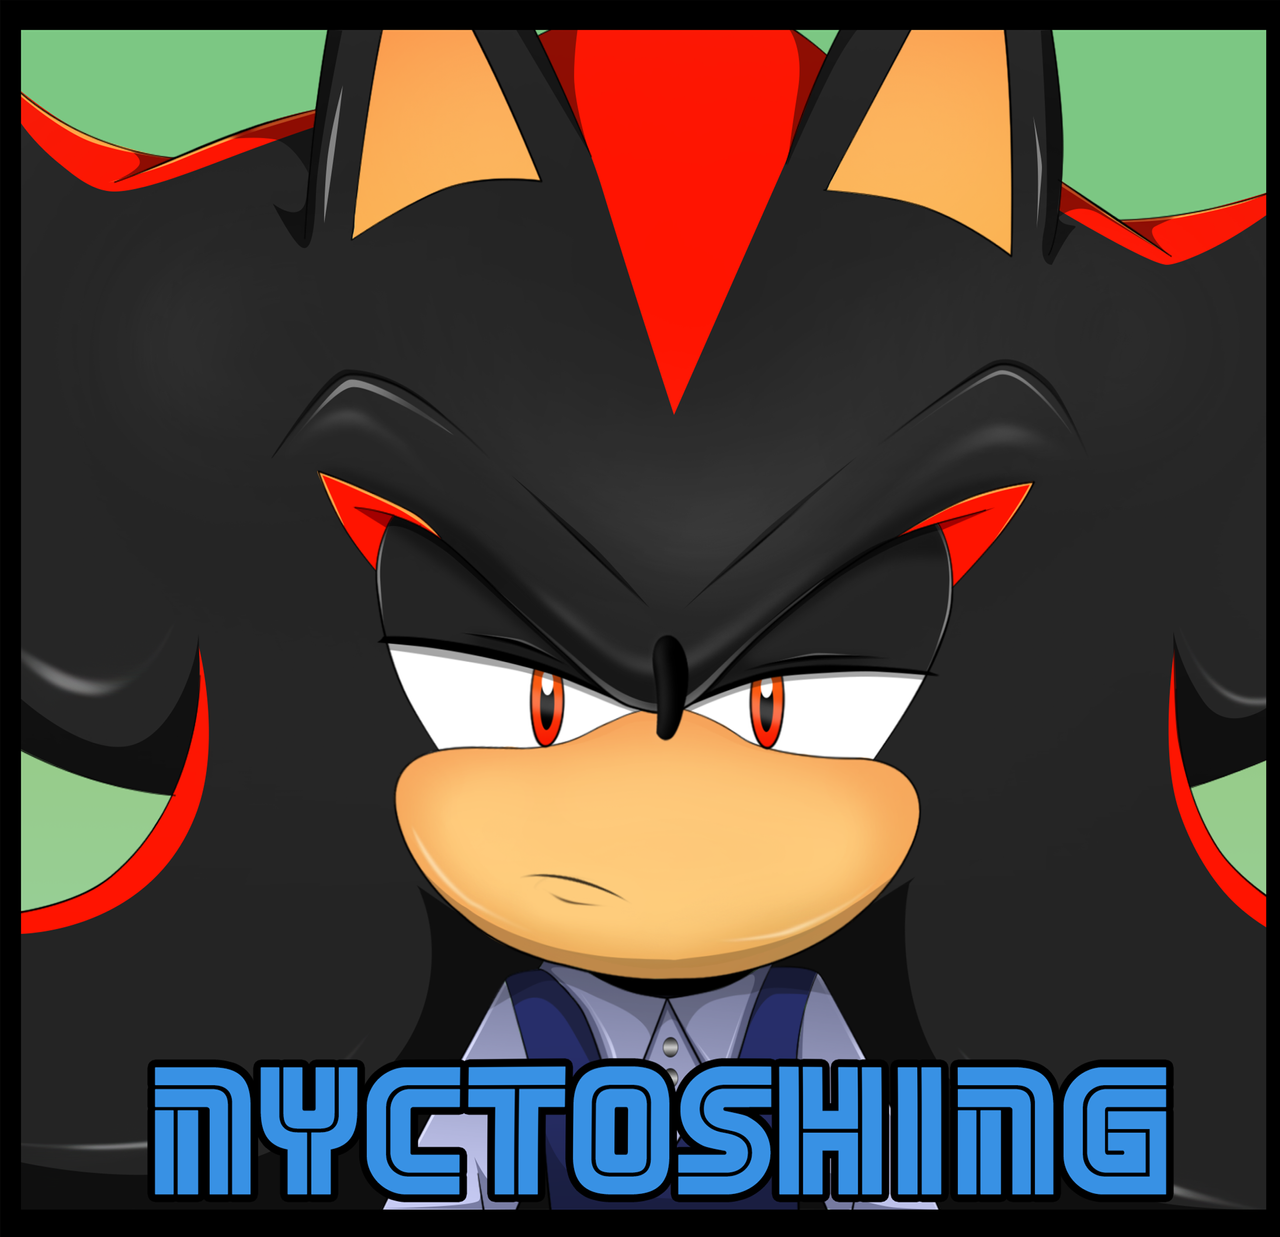 nyctoshing's Profile Picture